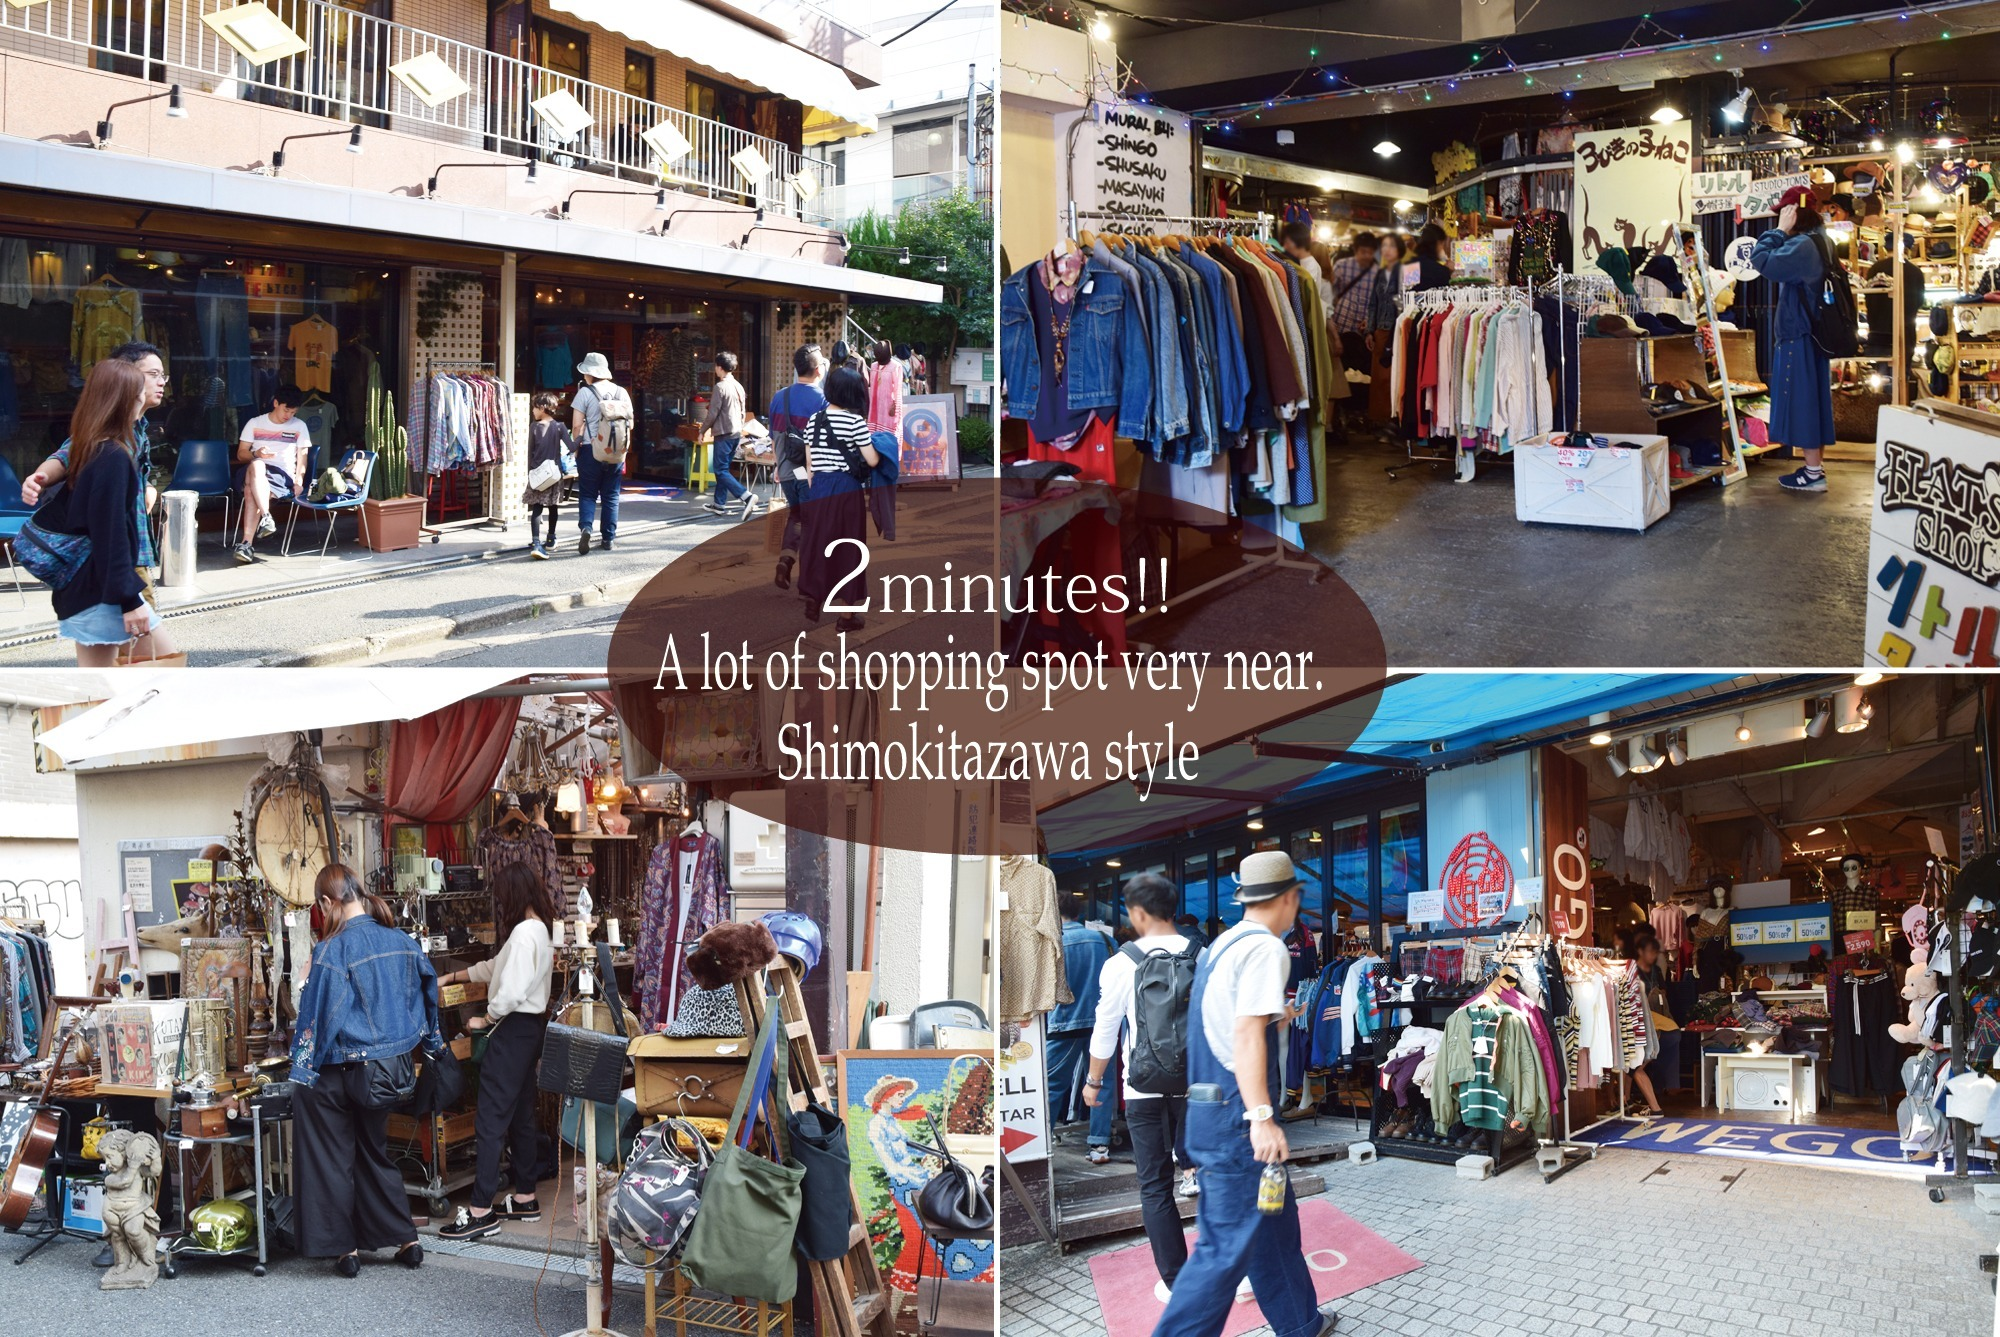 There are a lot of second-hand clothing stores and vintage shops in the vicinity. Just walking is fun!